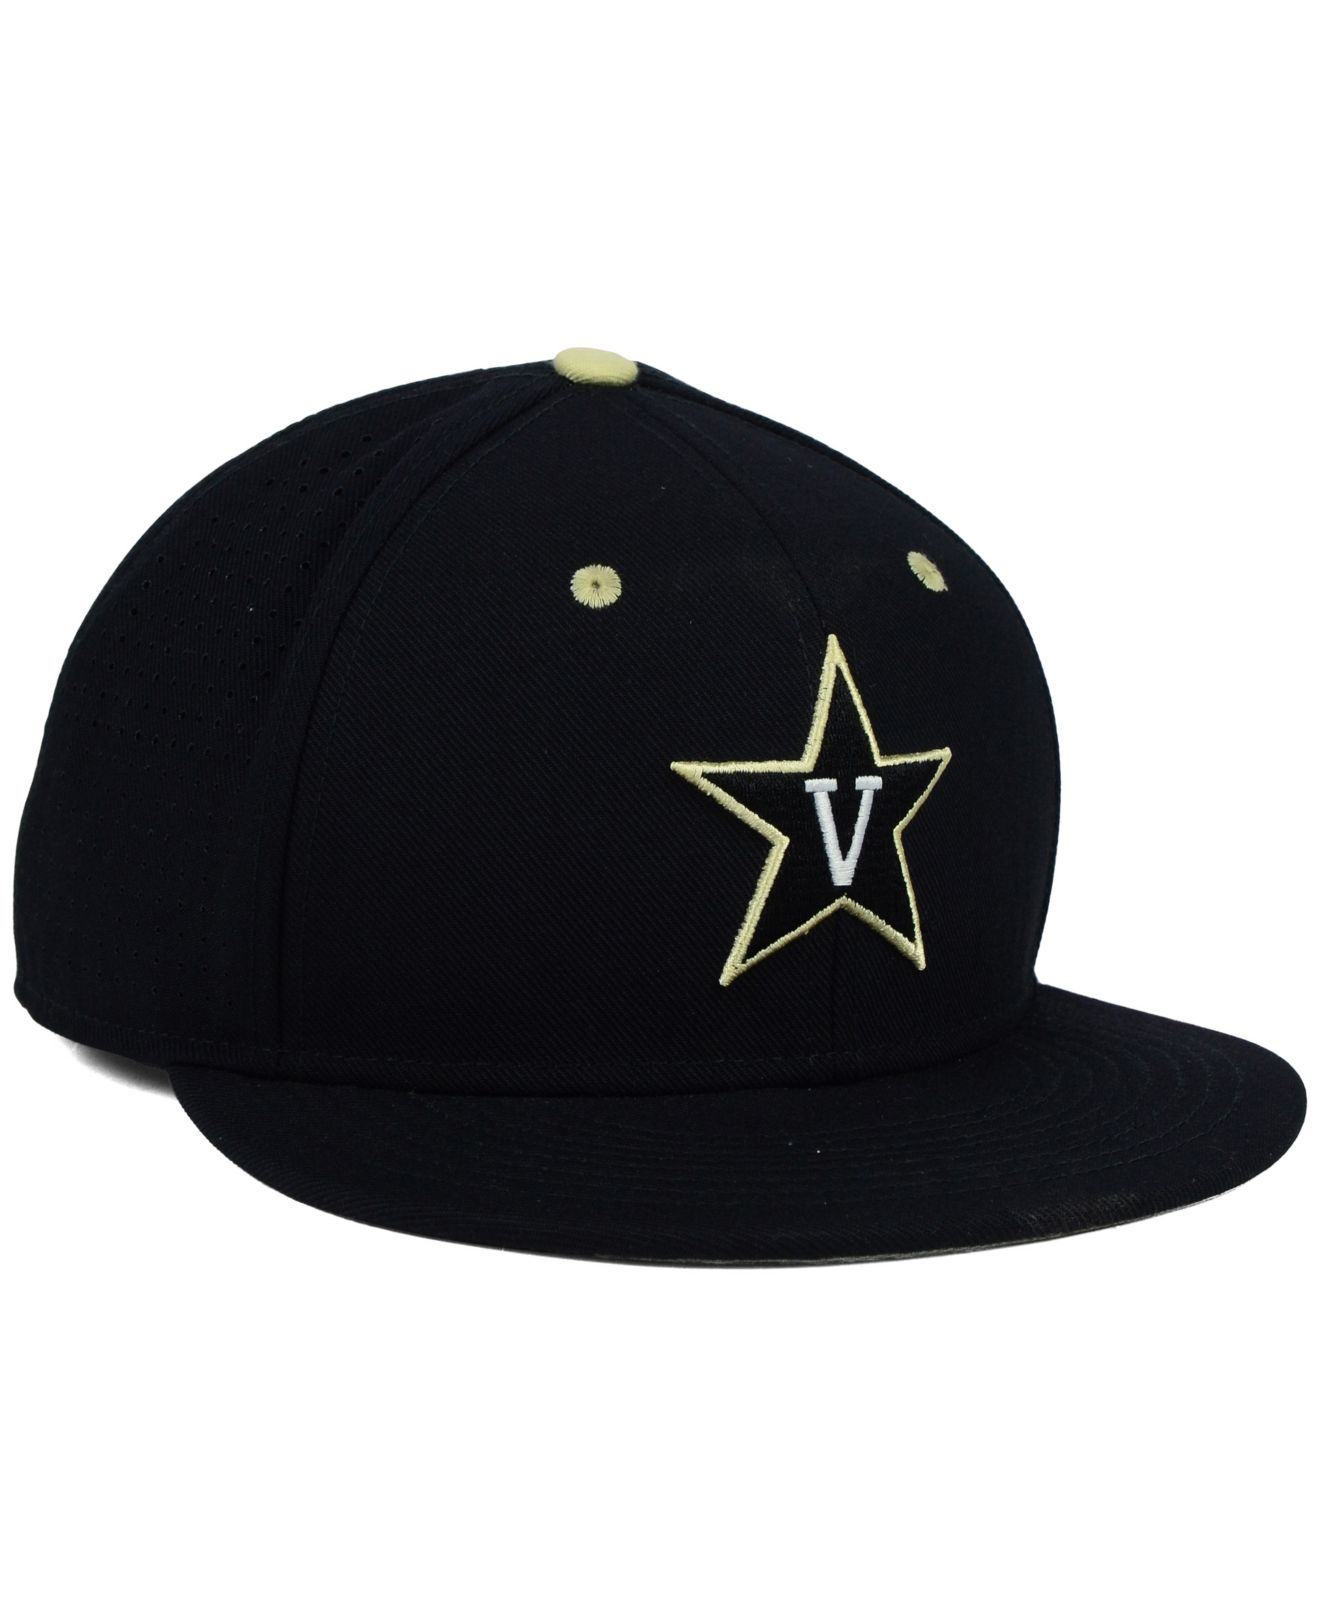 75f9d 64a52 ireland nike baseball vapor hat 1d869 91a42 cheapest lyst nike  vanderbilt commodores authentic vapor cap in black for men 650dc 453ed ... f8ae1c485f03